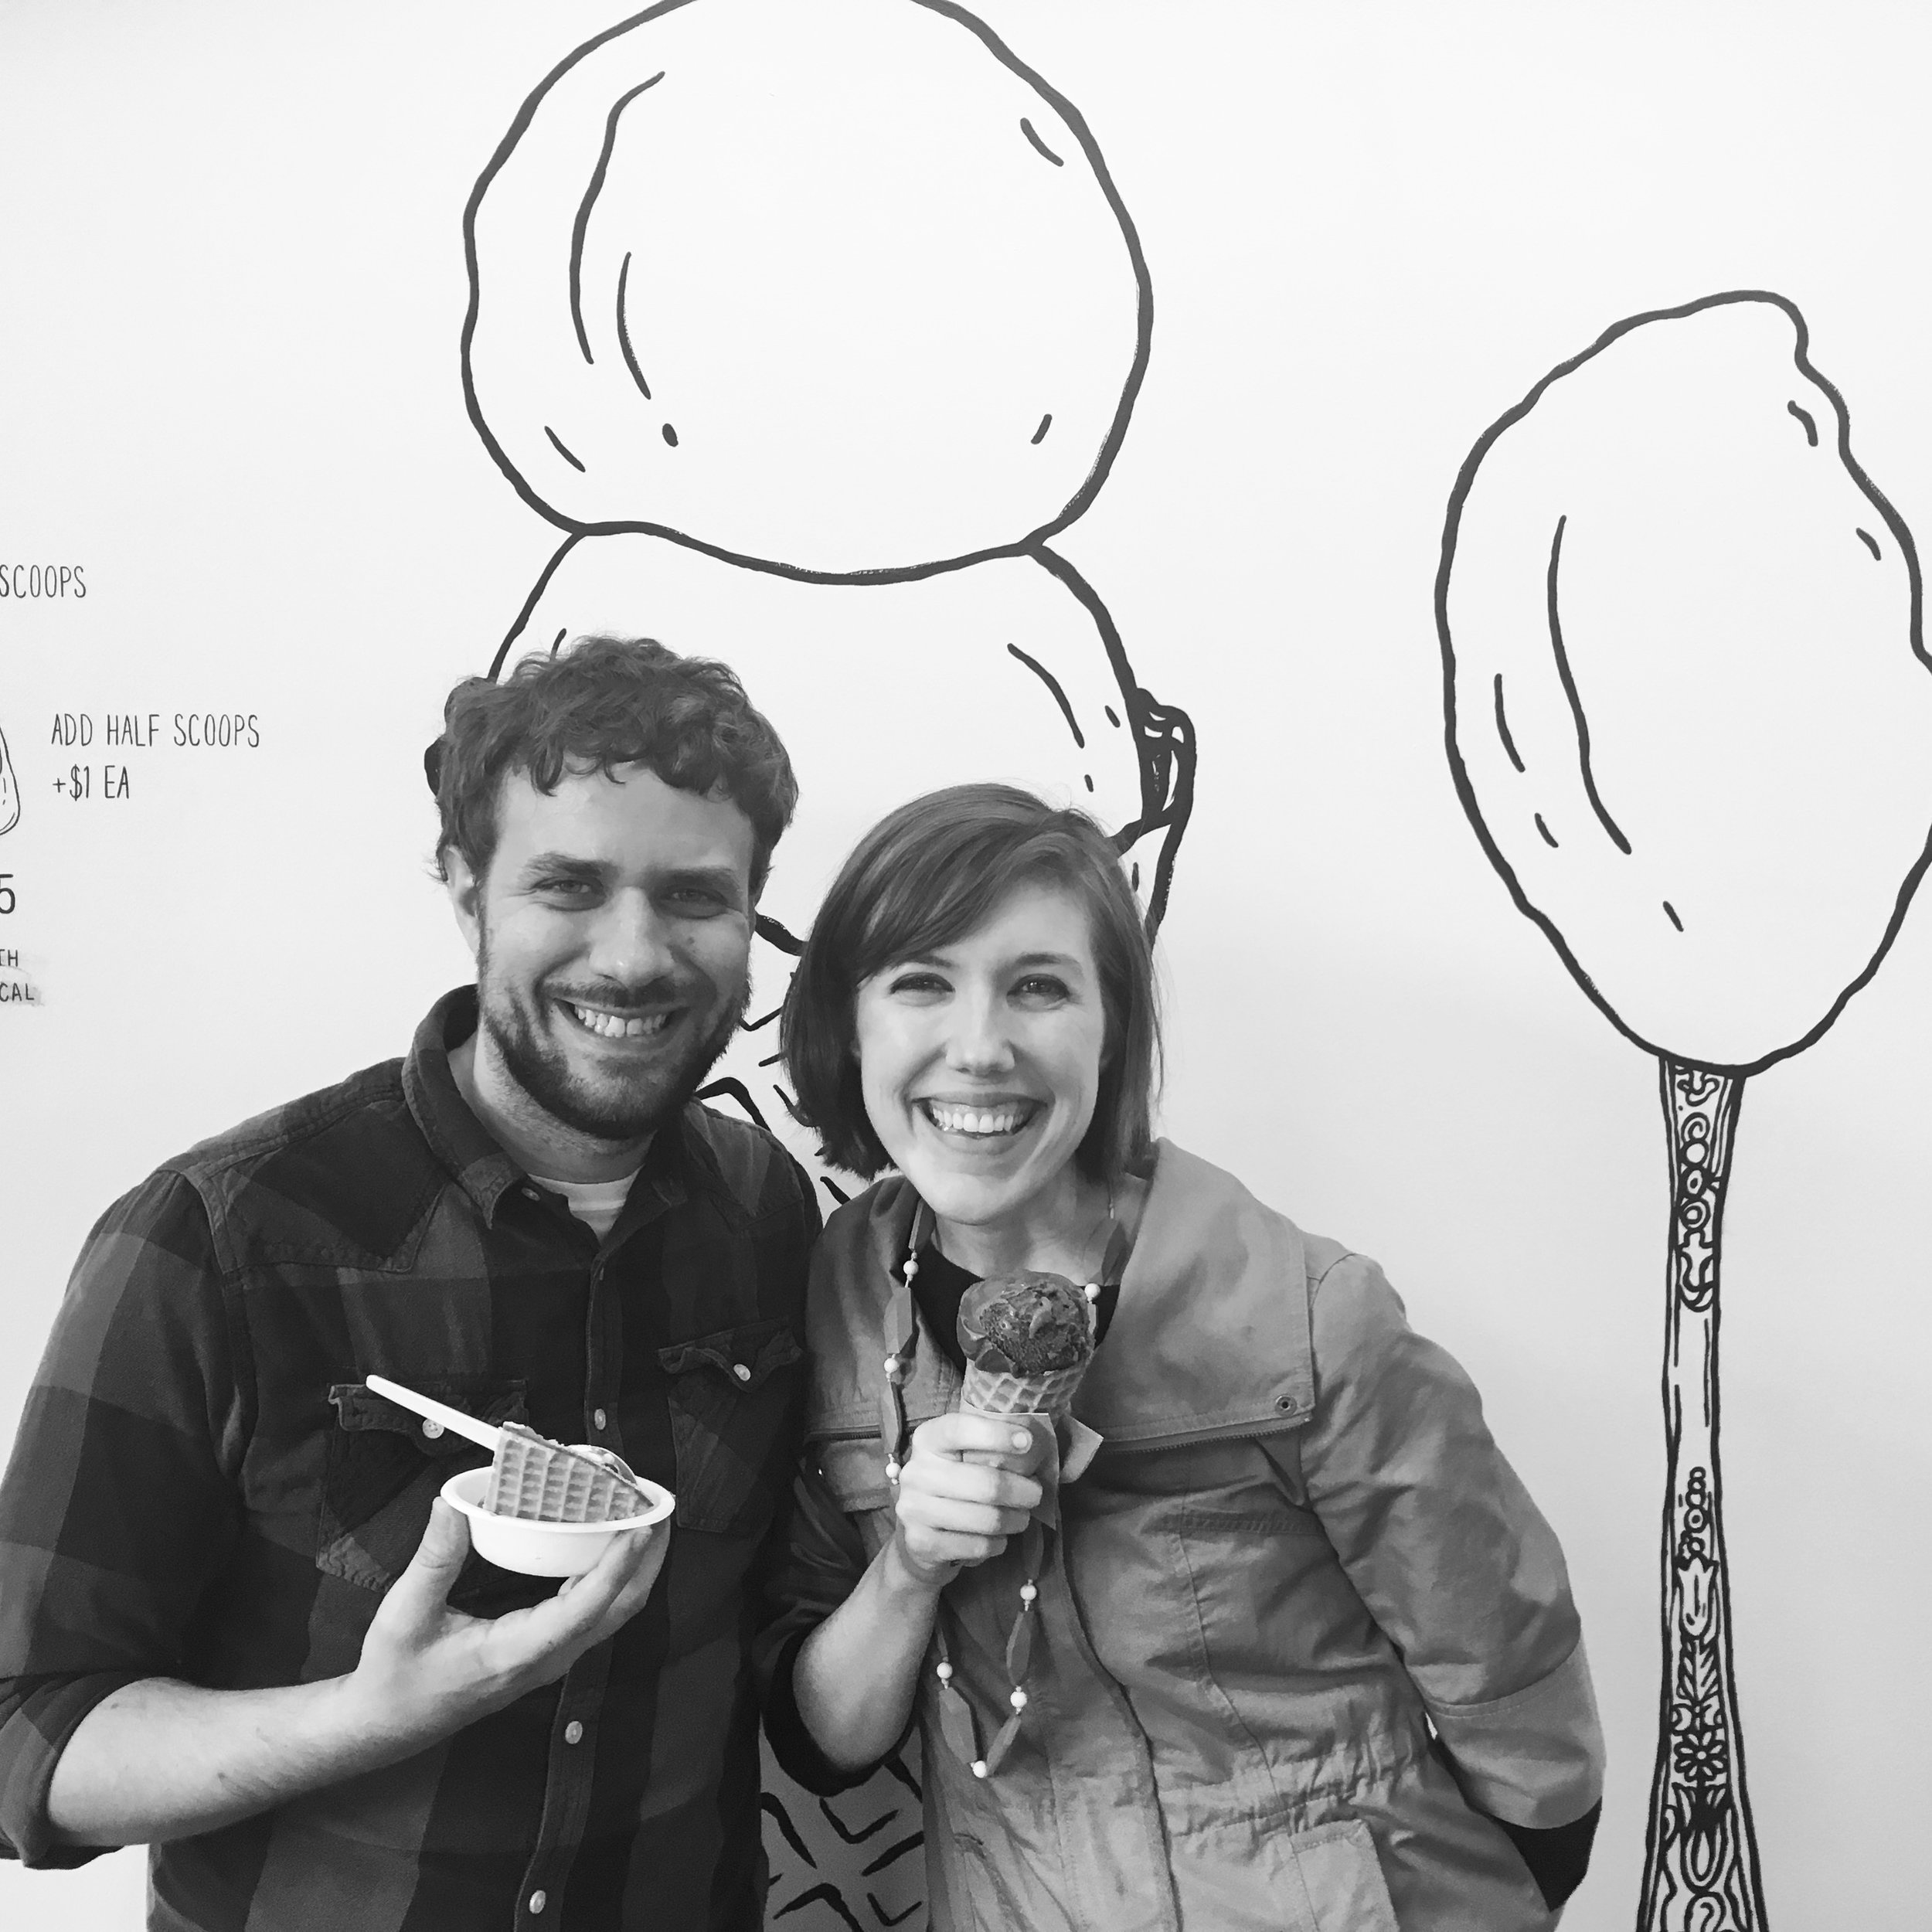 On our marriage getaway weekend at Jeni's in Columbus!